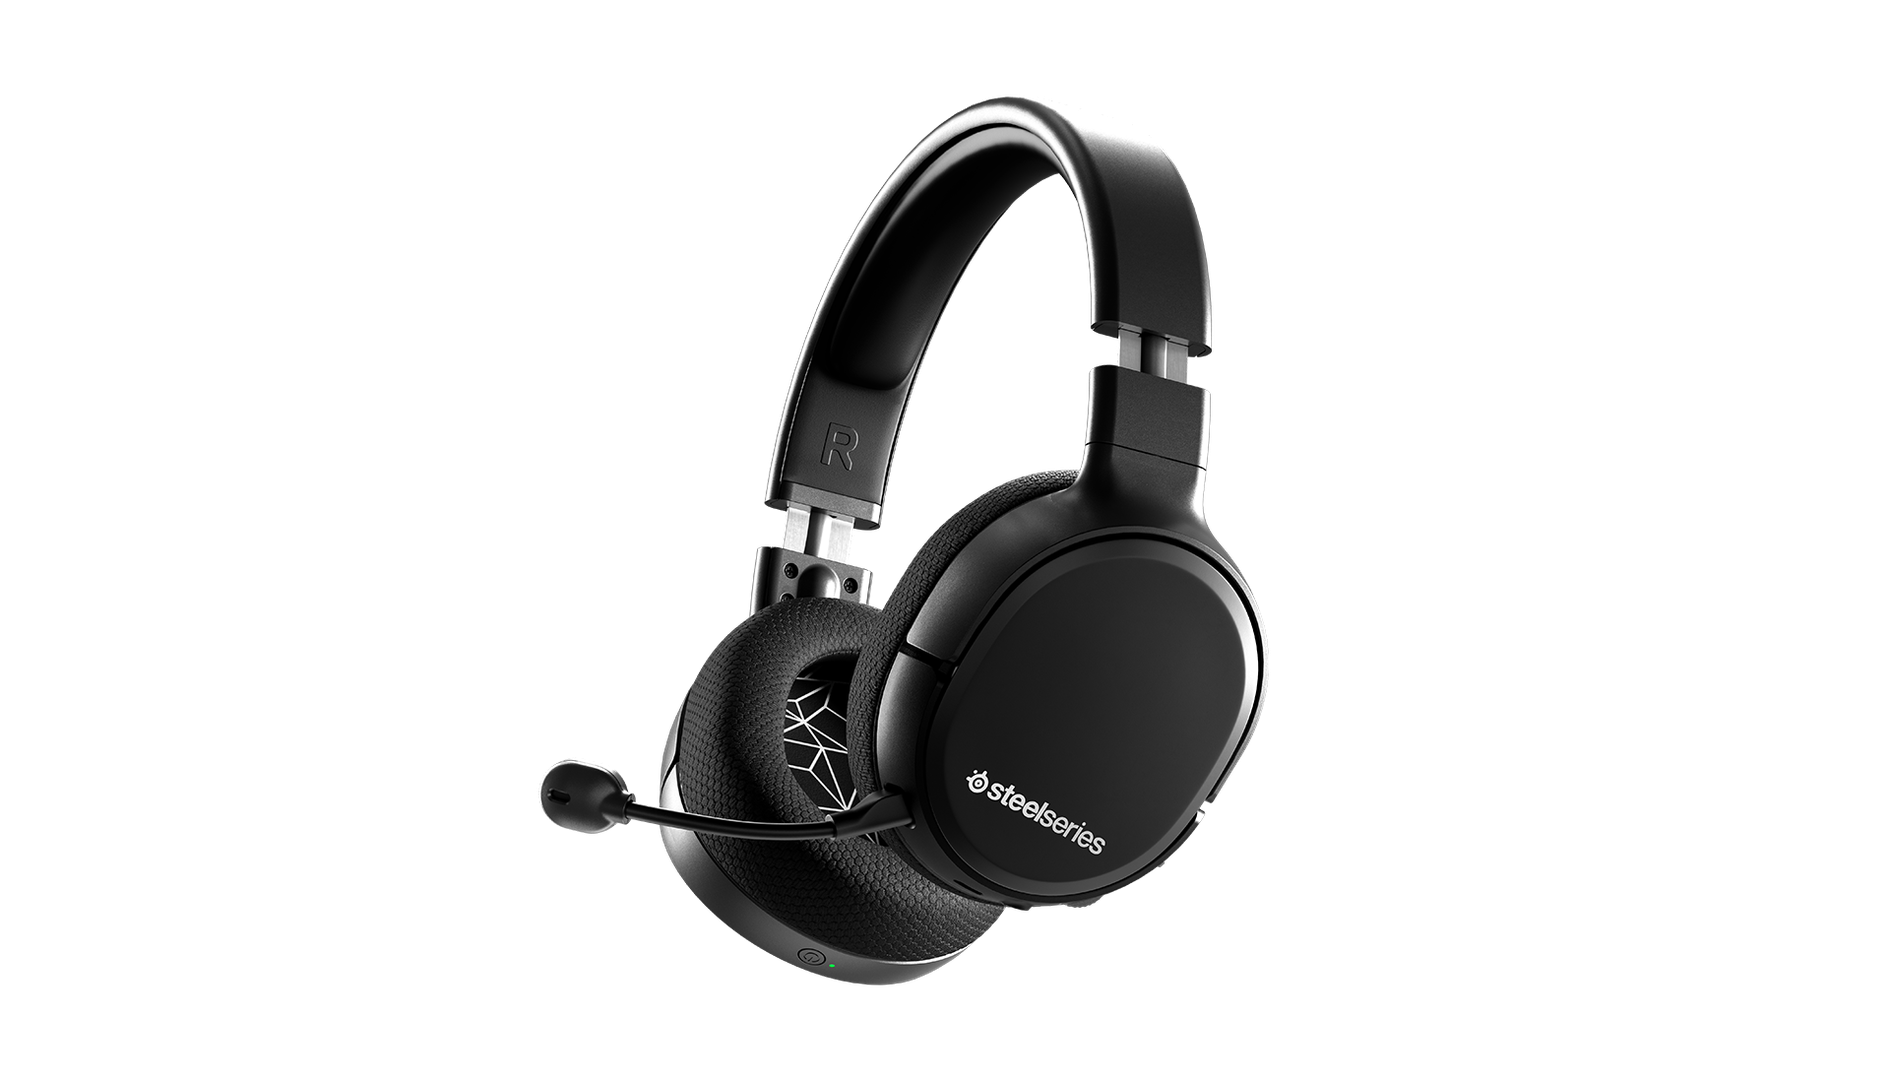 Arctis 1 Wireless headset floating in space